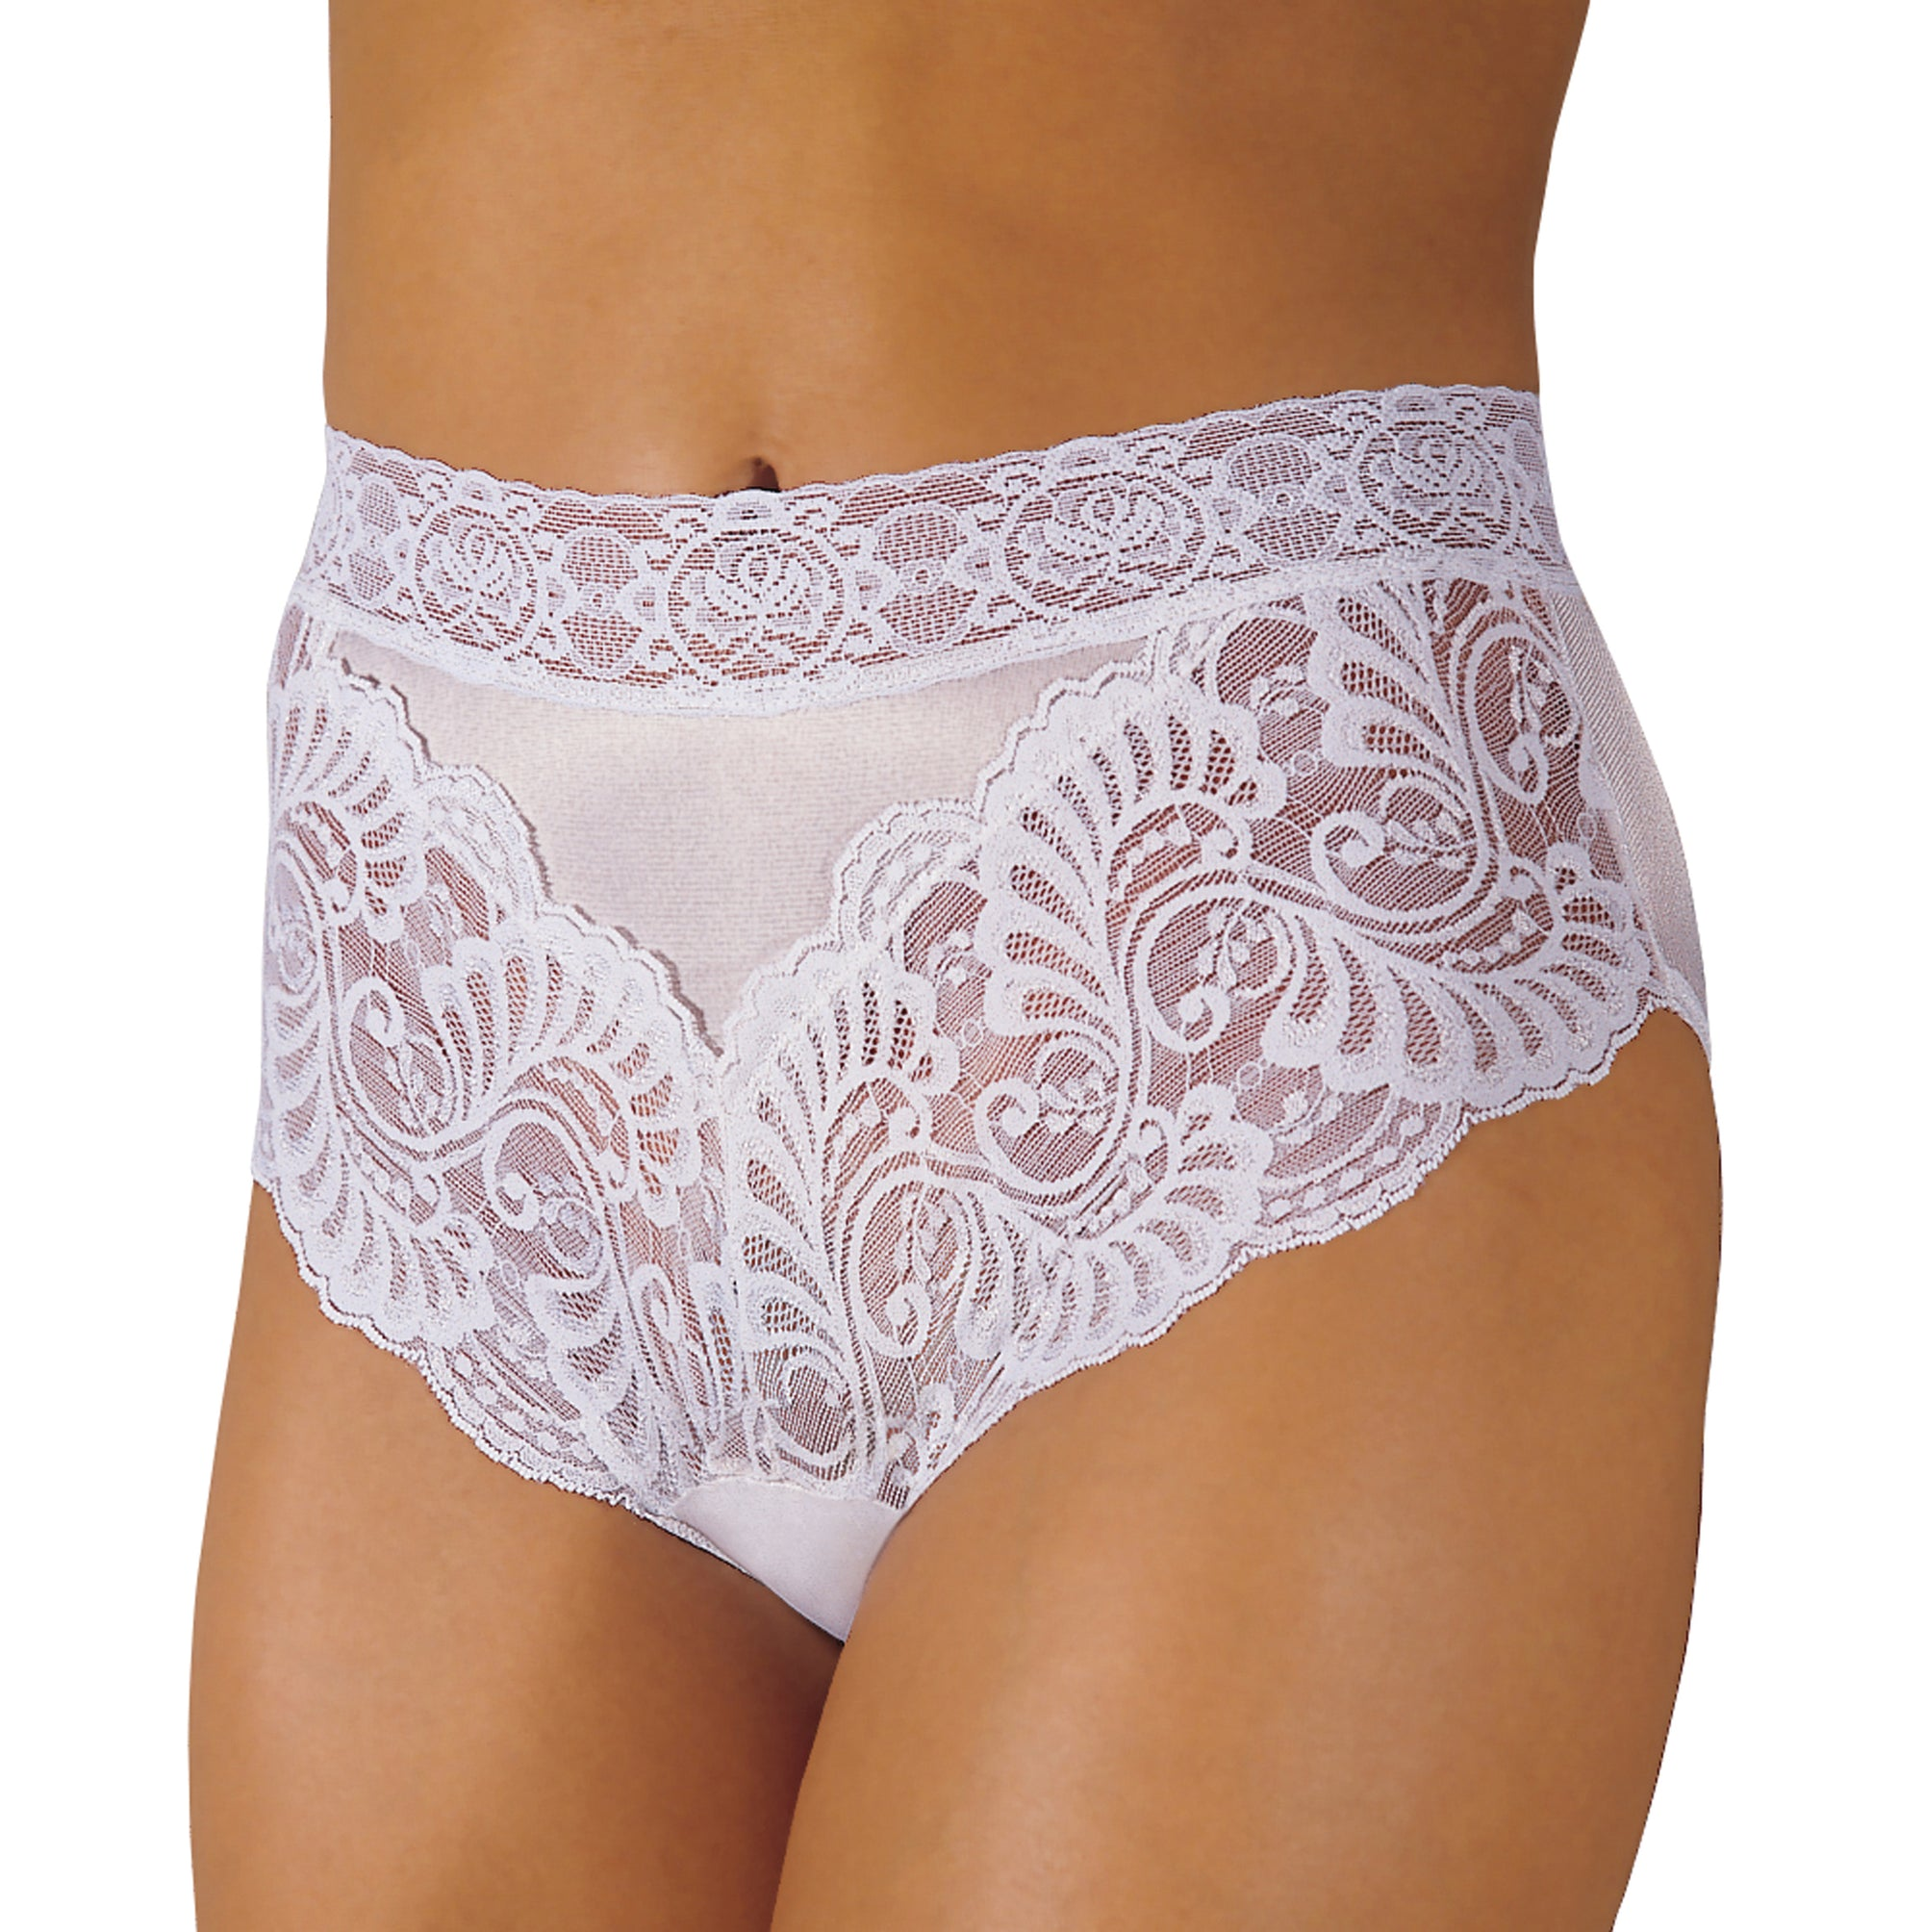 d2541dcbab62 Reusable Female Lace Trim Incontinence Panty